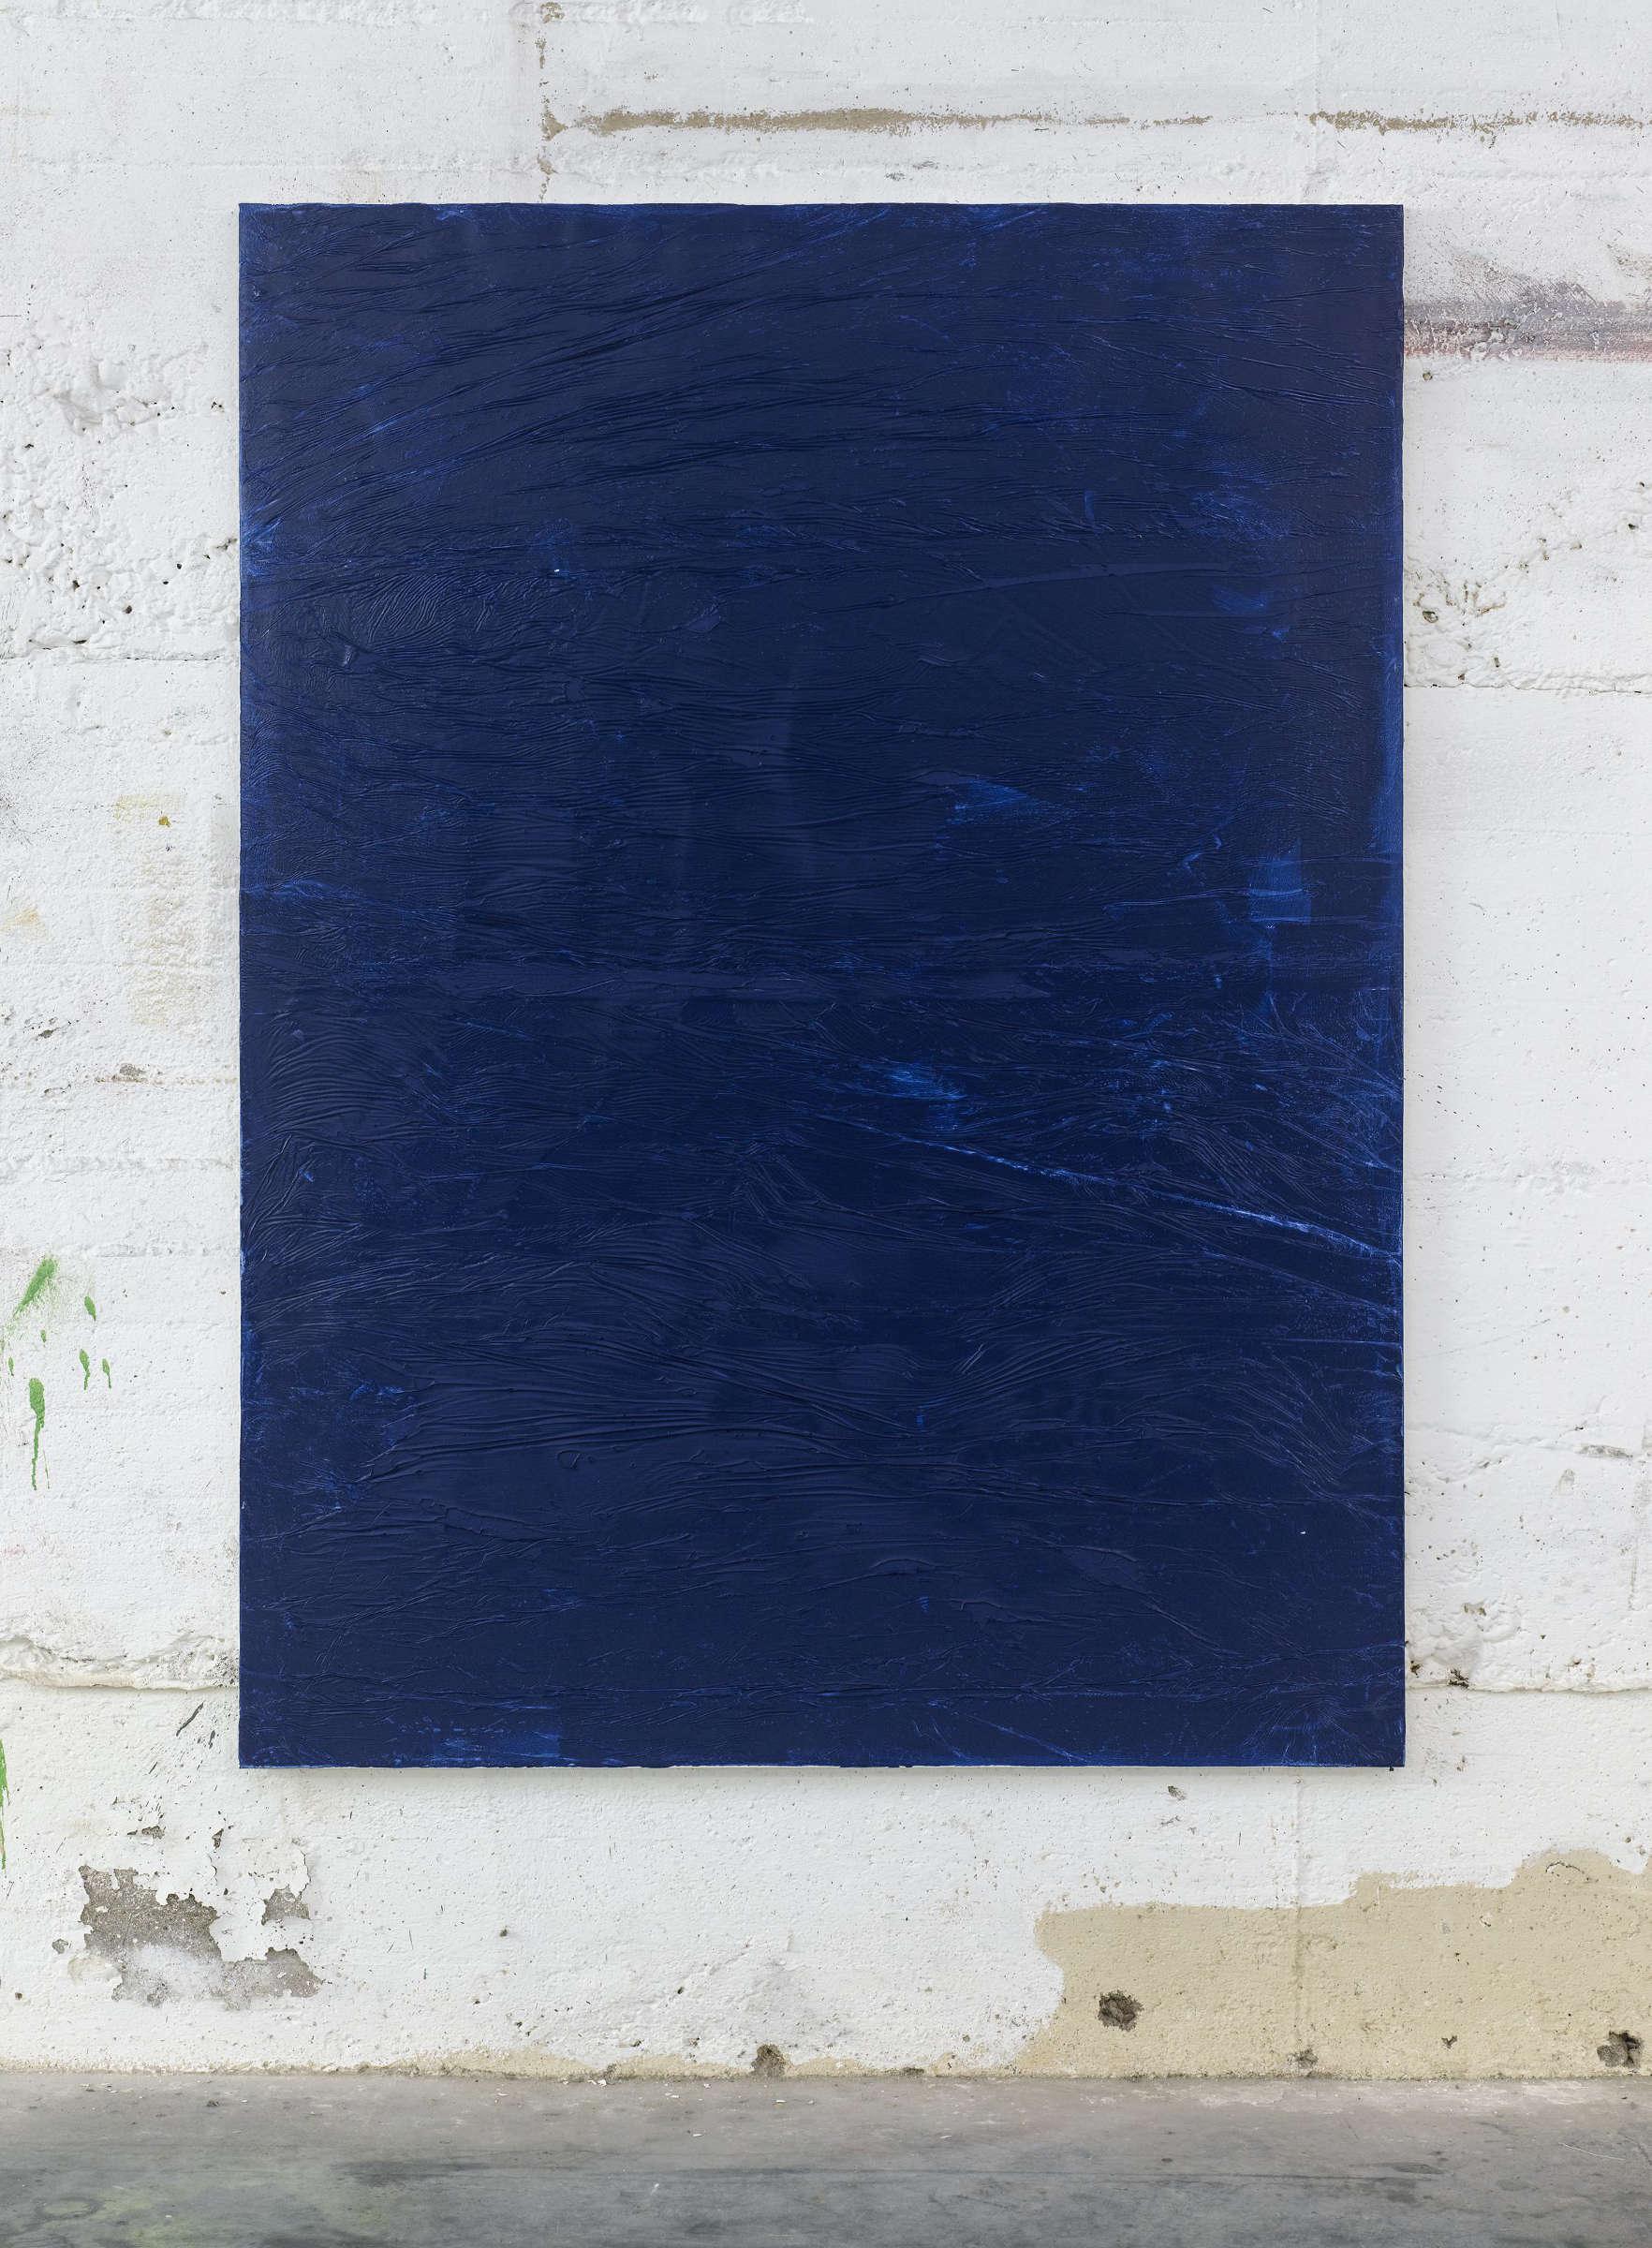 17_Tiziano Martini, 2015, untitled, acrylic paint on cotton, cm 160x120, photo Dejna Saric